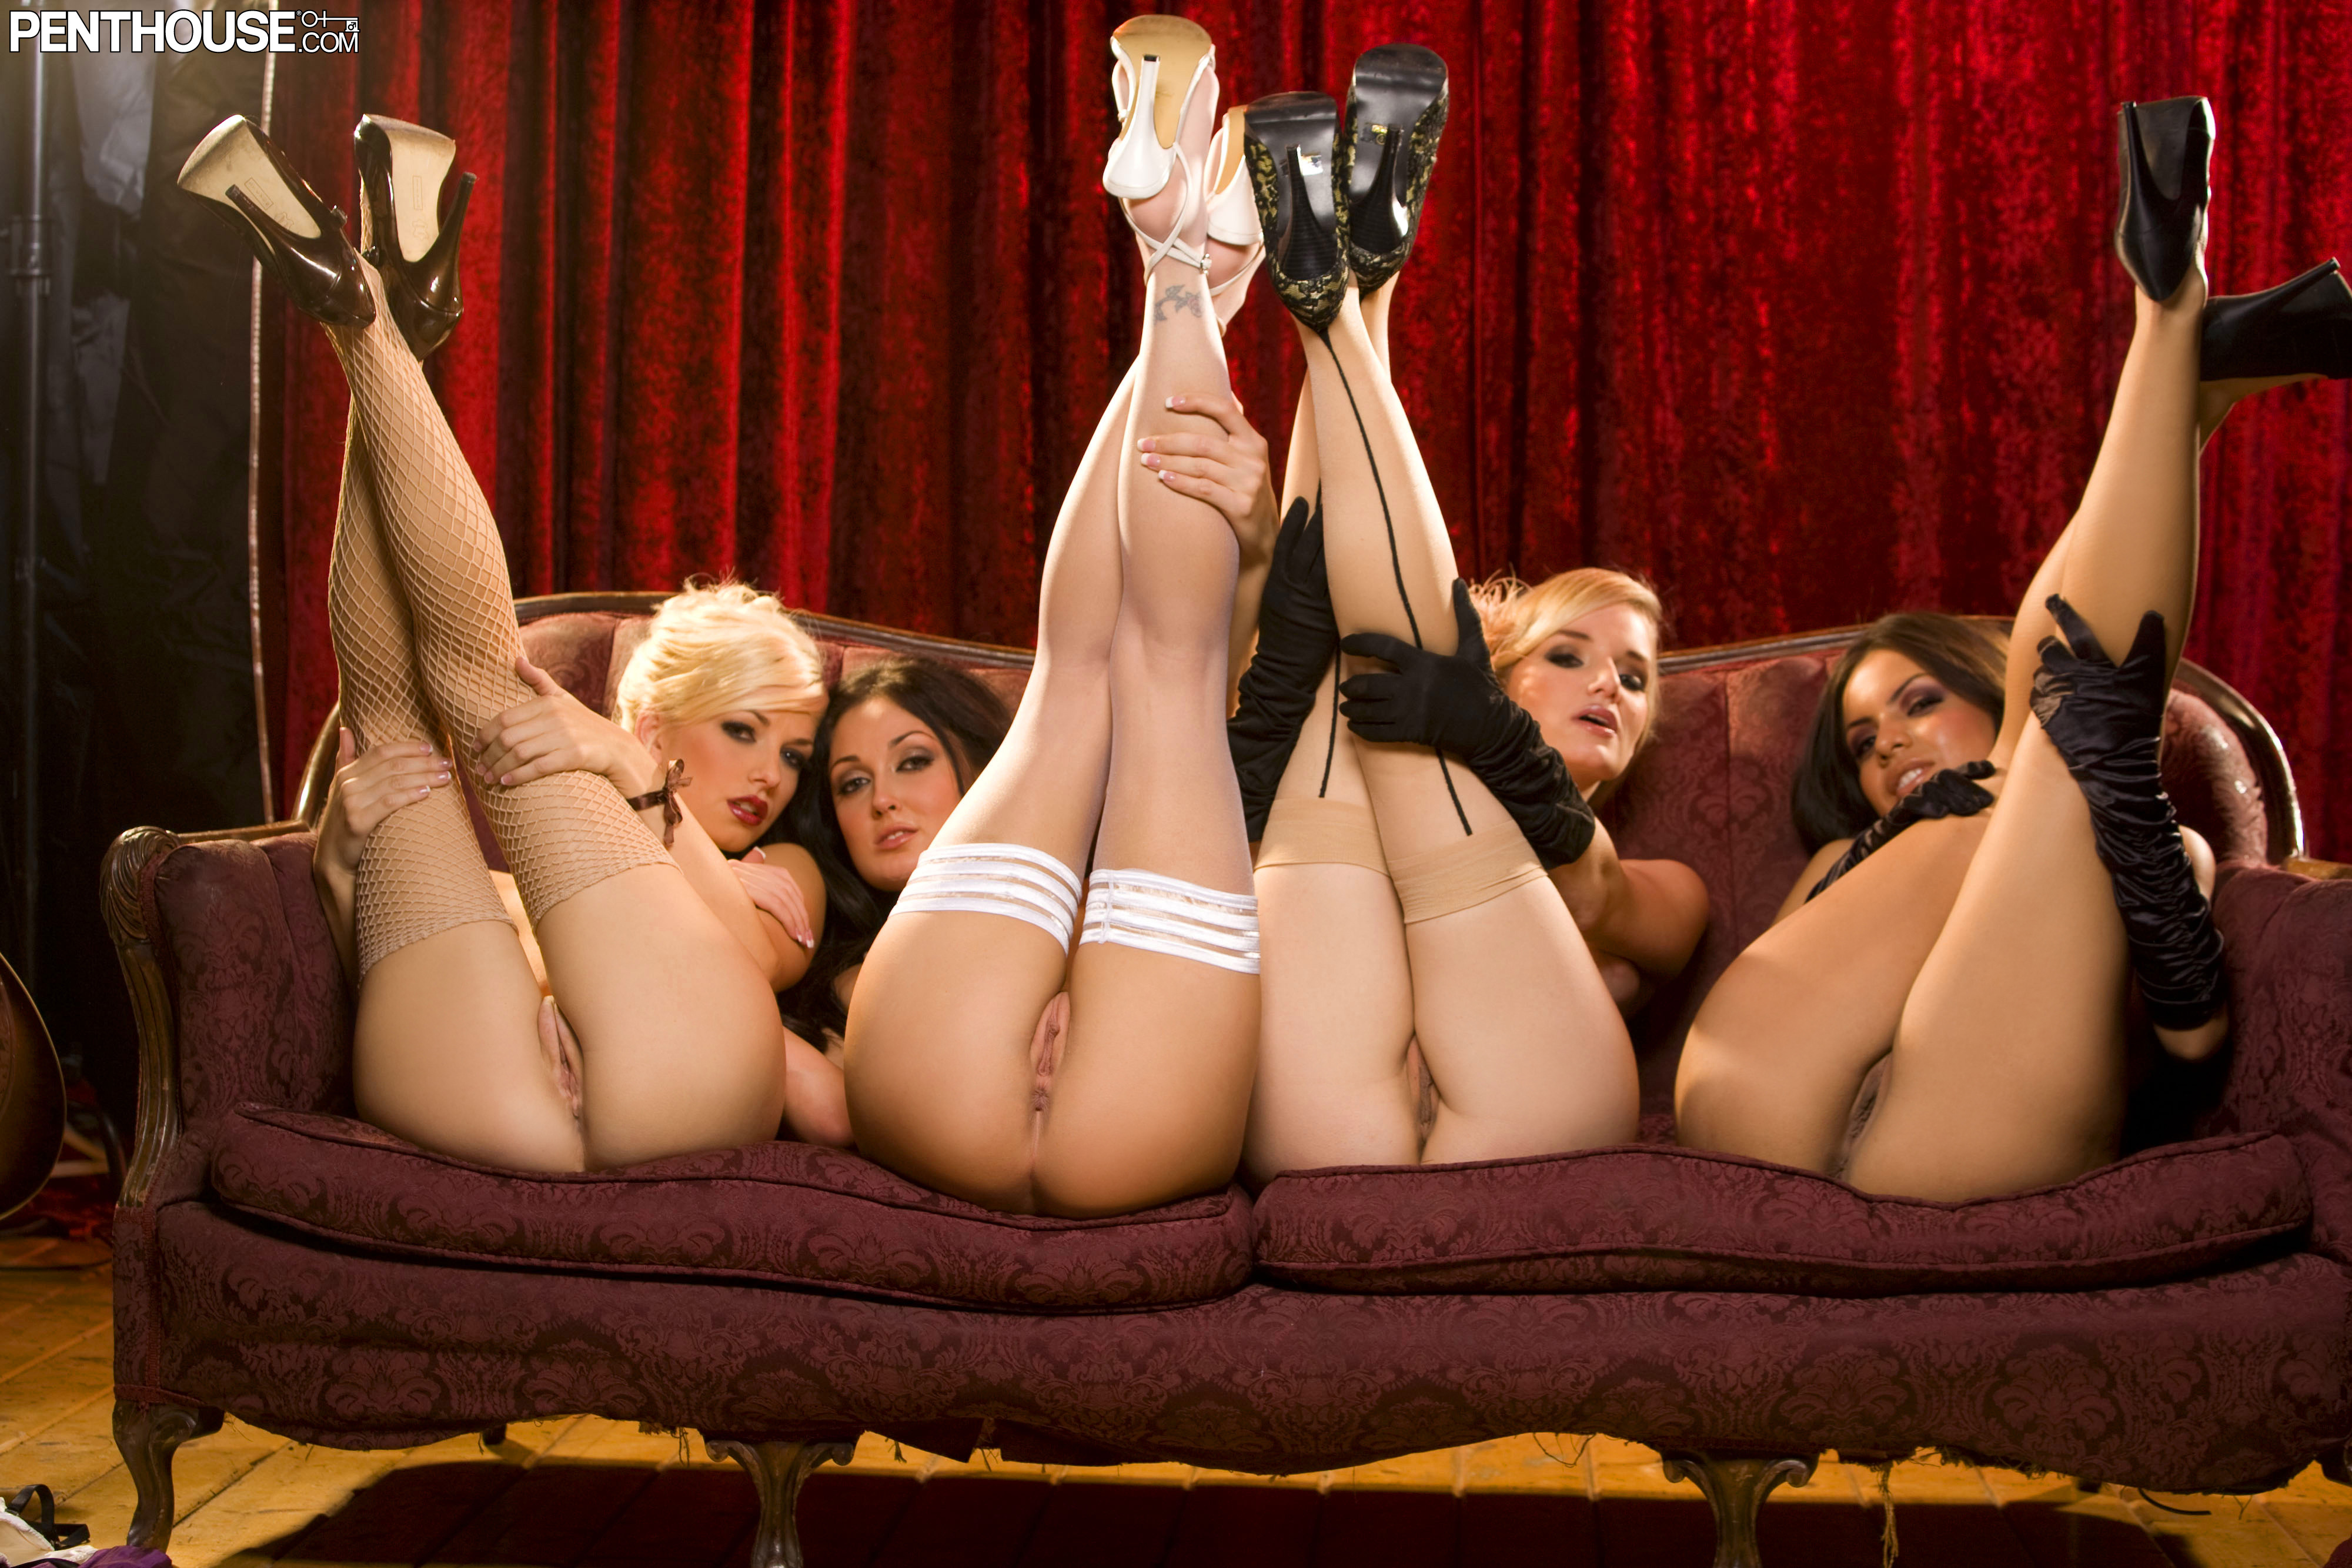 Group nude girls heels accept. The